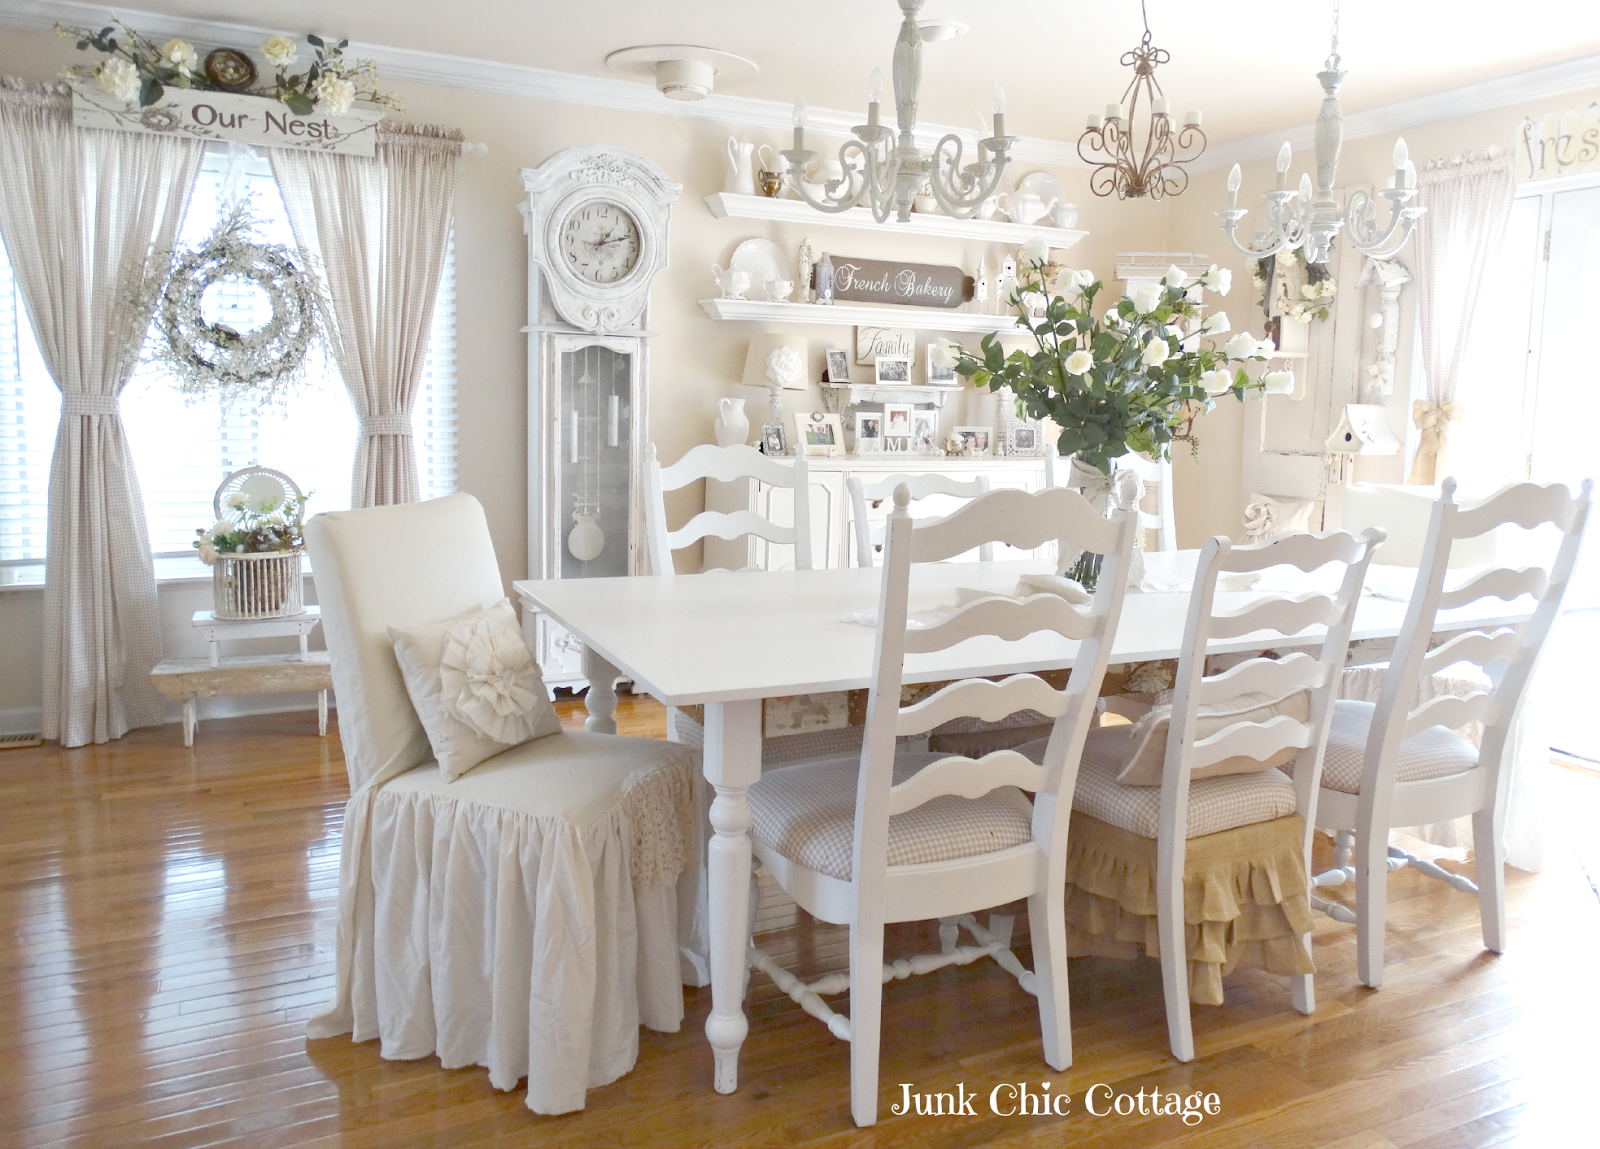 Dining Room Reveal (Junk Chic Cottage) | Junk chic cottage ...